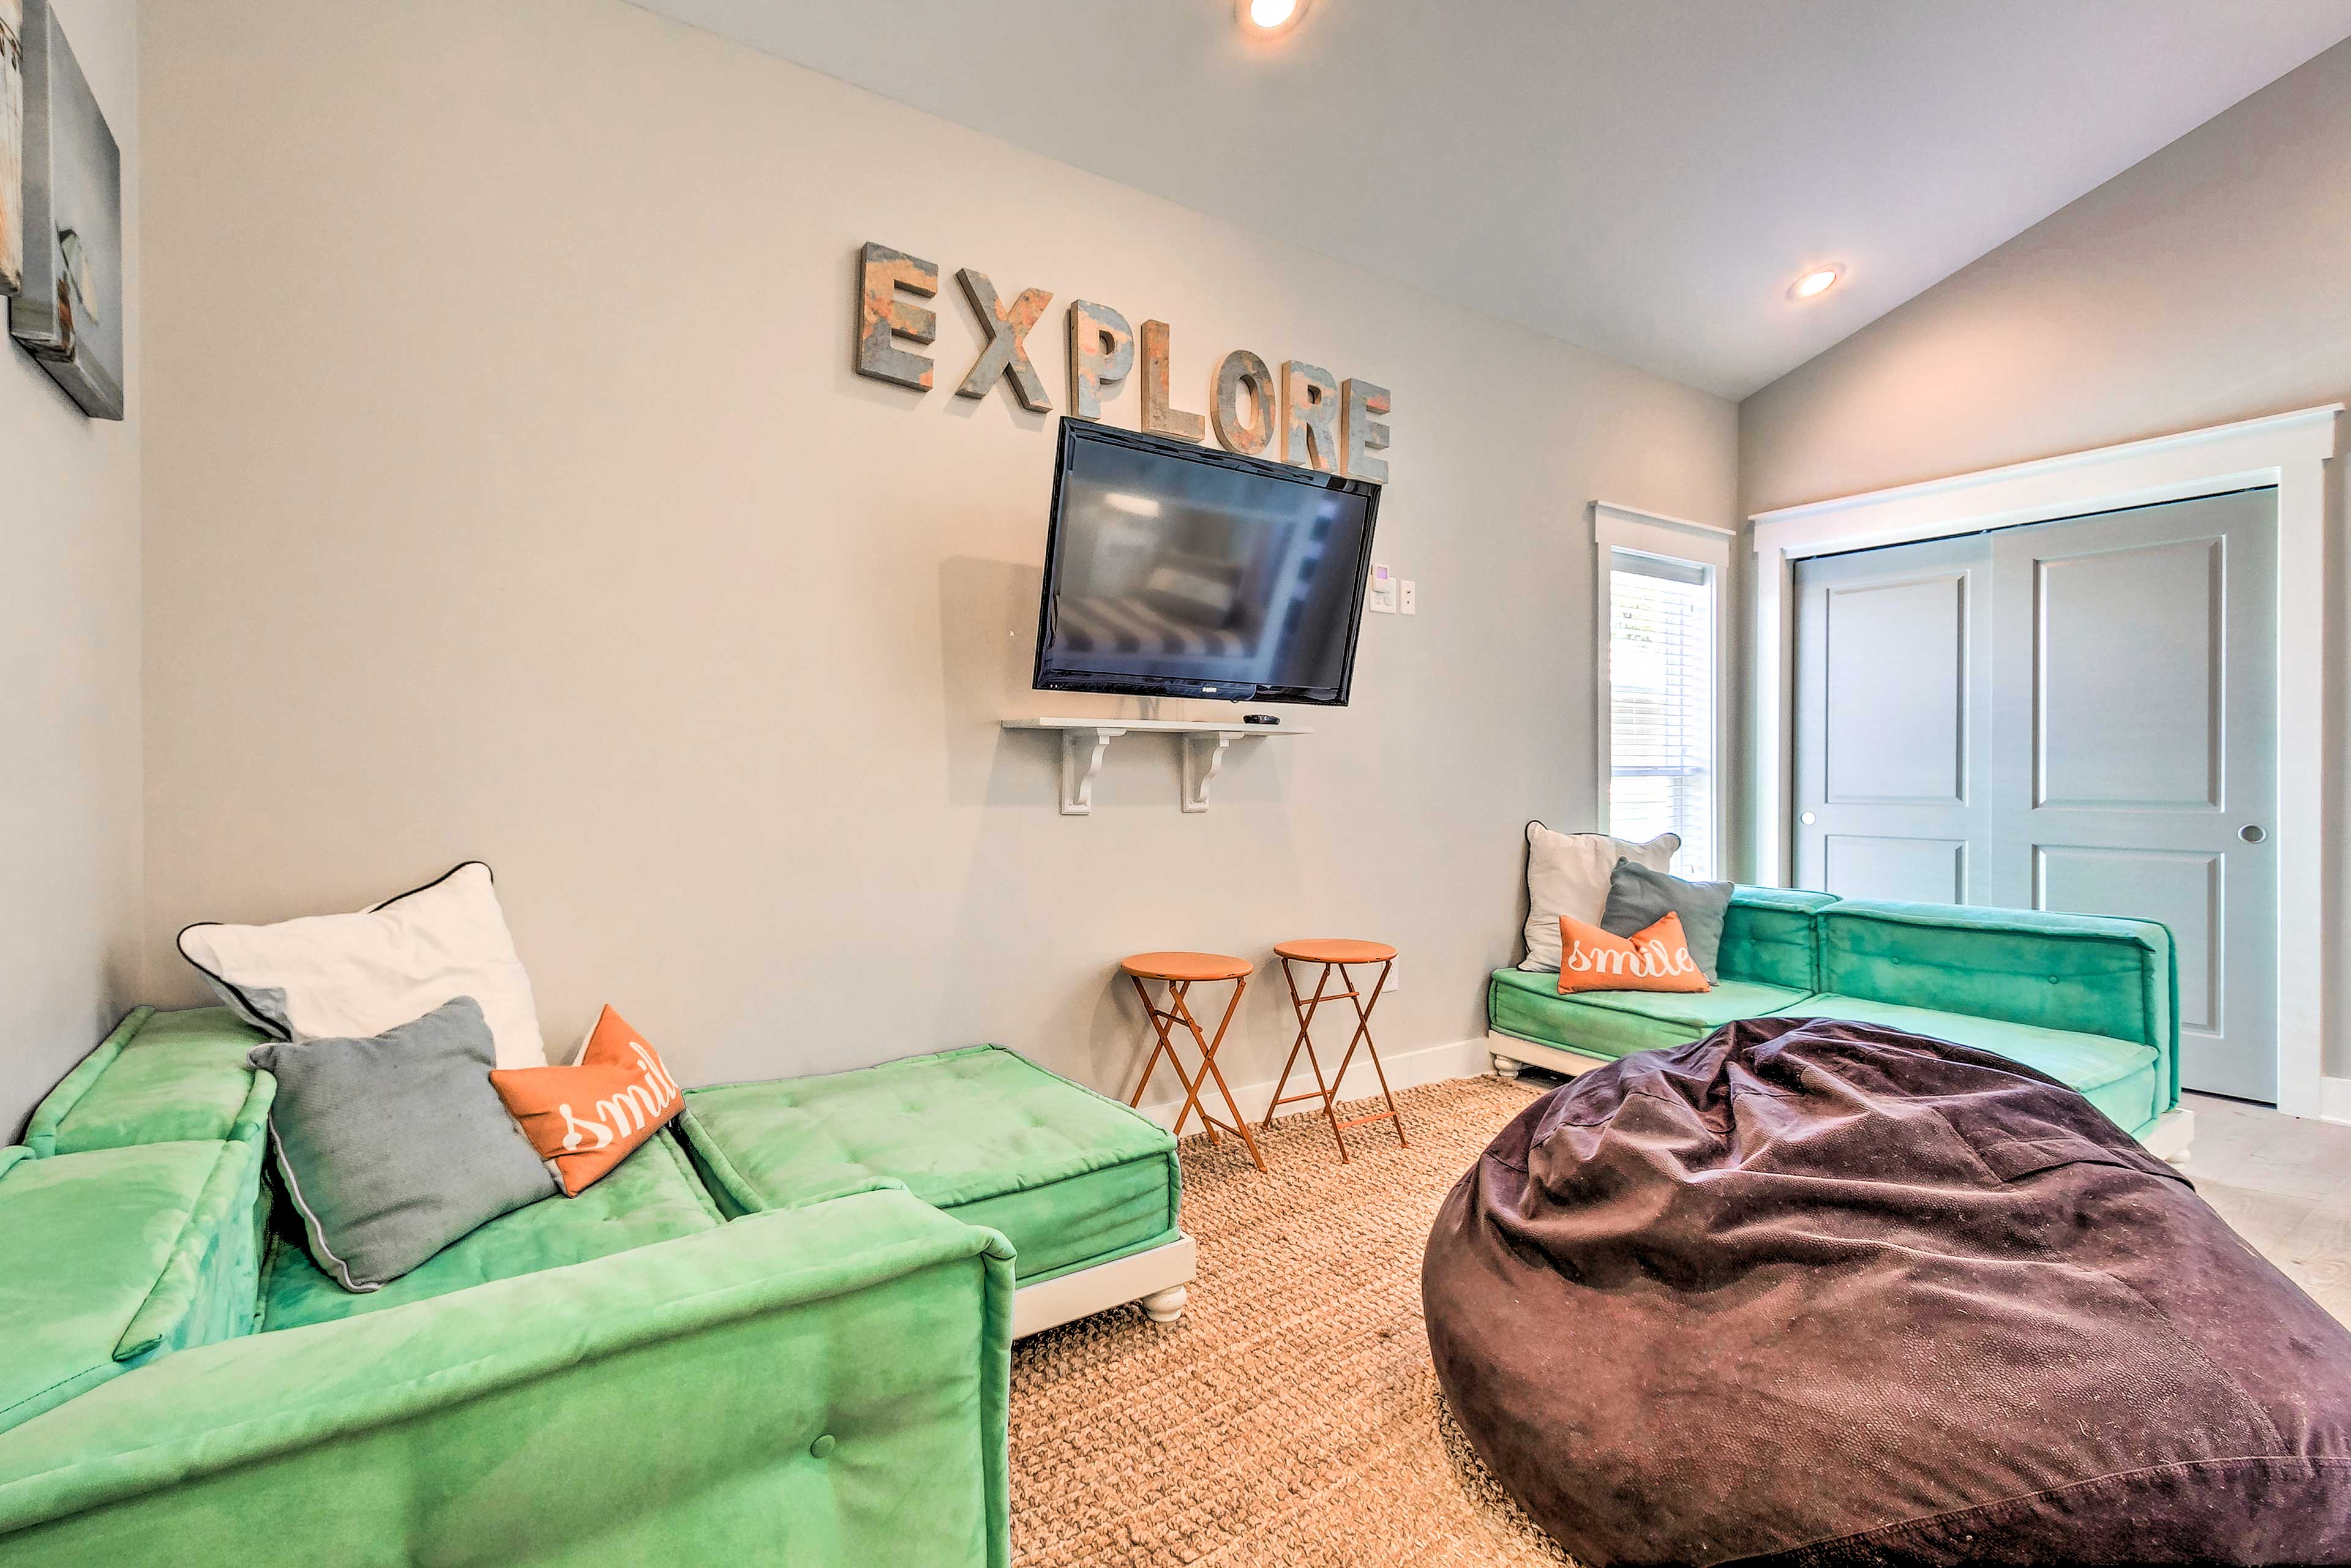 Explore this kid-friendly corner of the home, complete w/ a beanbag chair & TV!